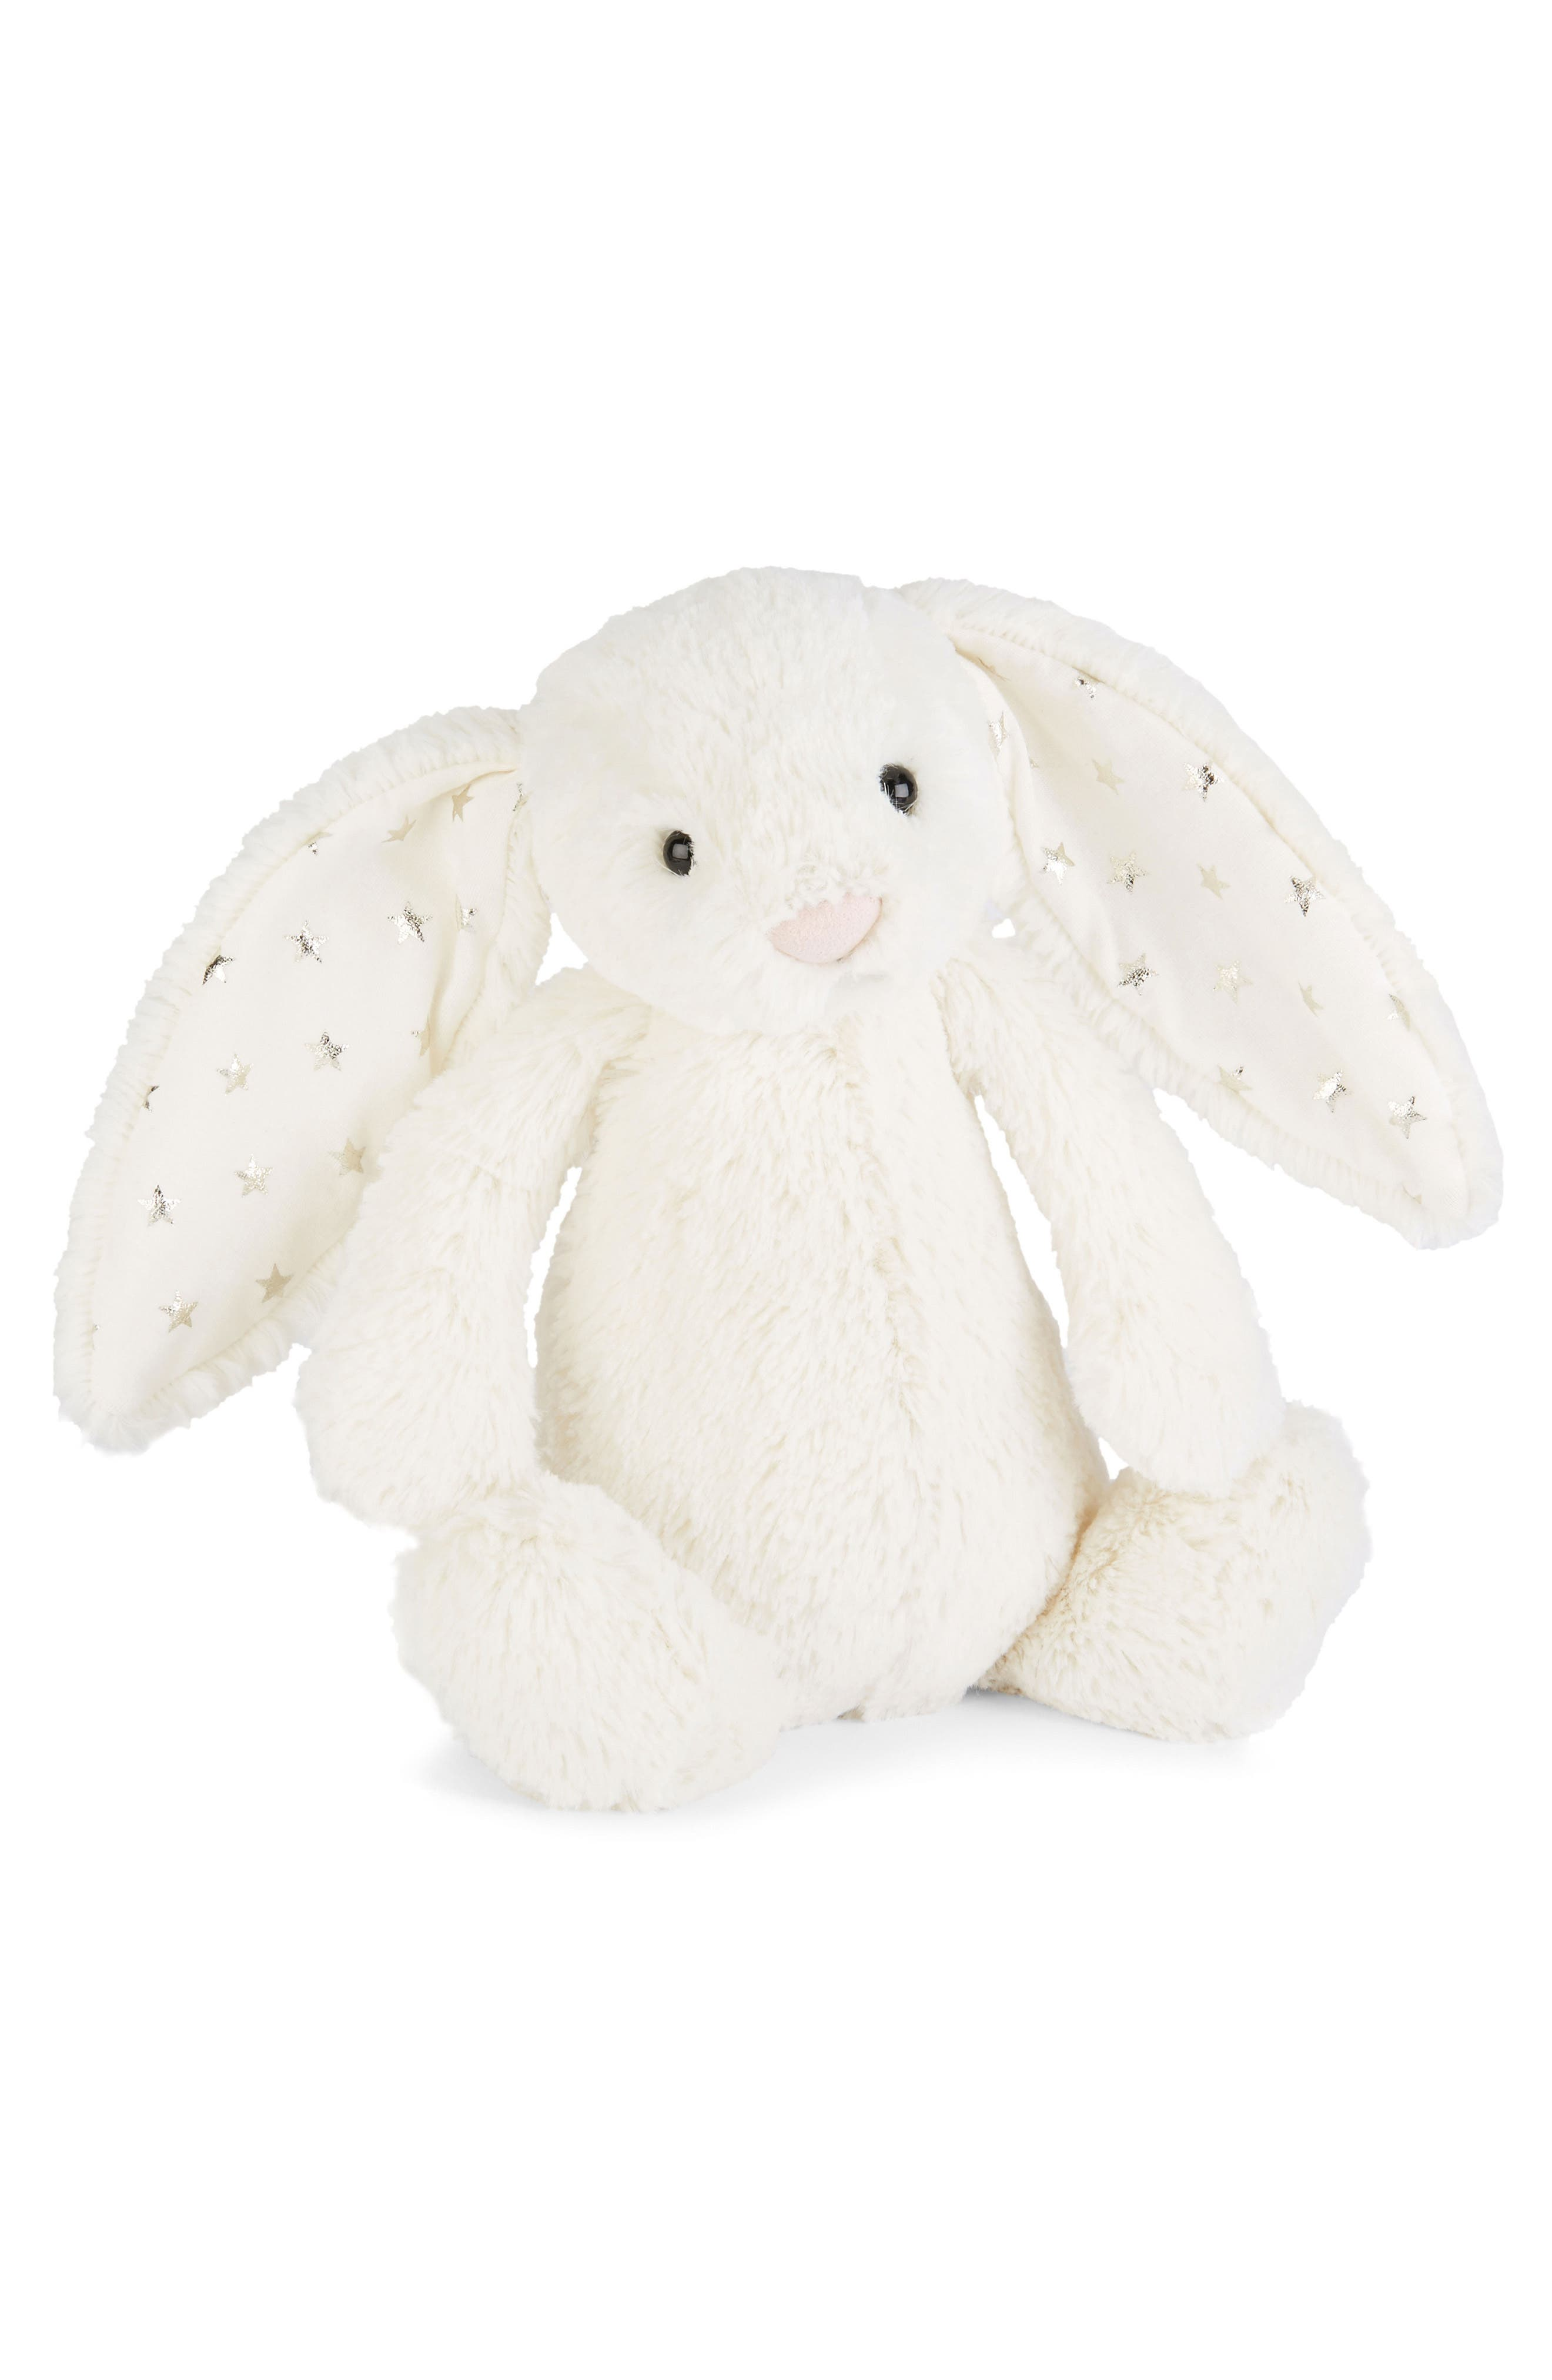 Jellycat Twinkle Bunny Stuffed Animal